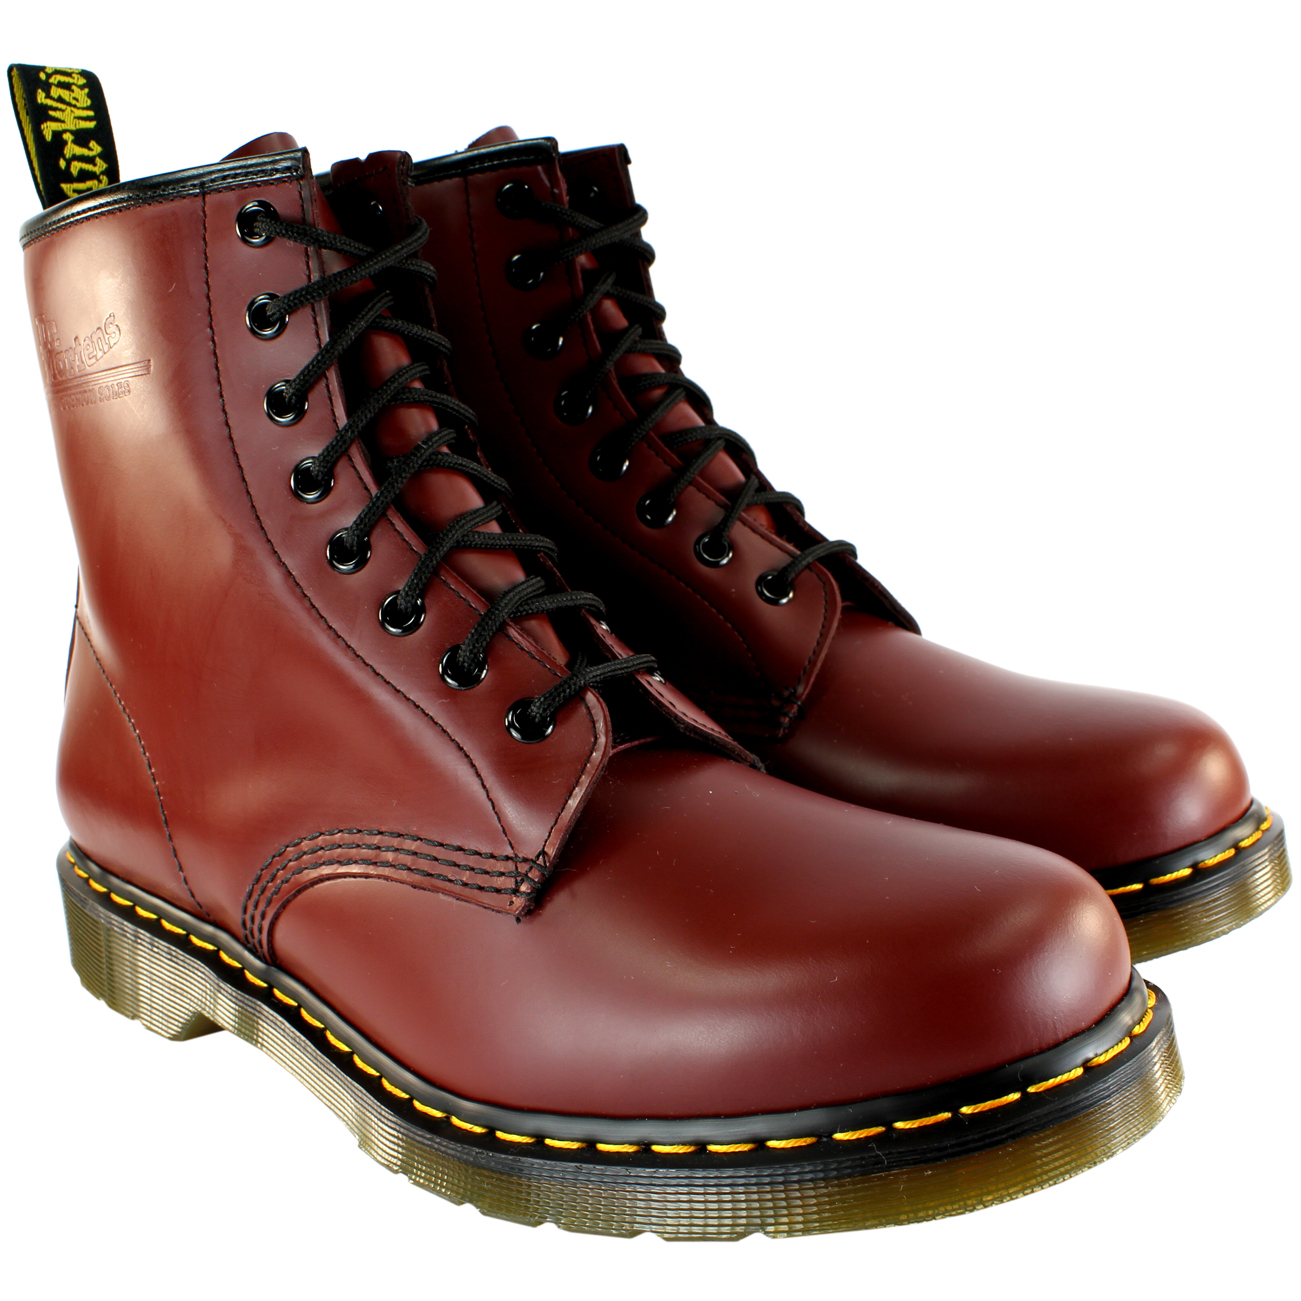 Womens Dr Martens 1460 Classic Lace Up Leather Ankle Army Boots US Sizes  5-10 b5a0bd9017